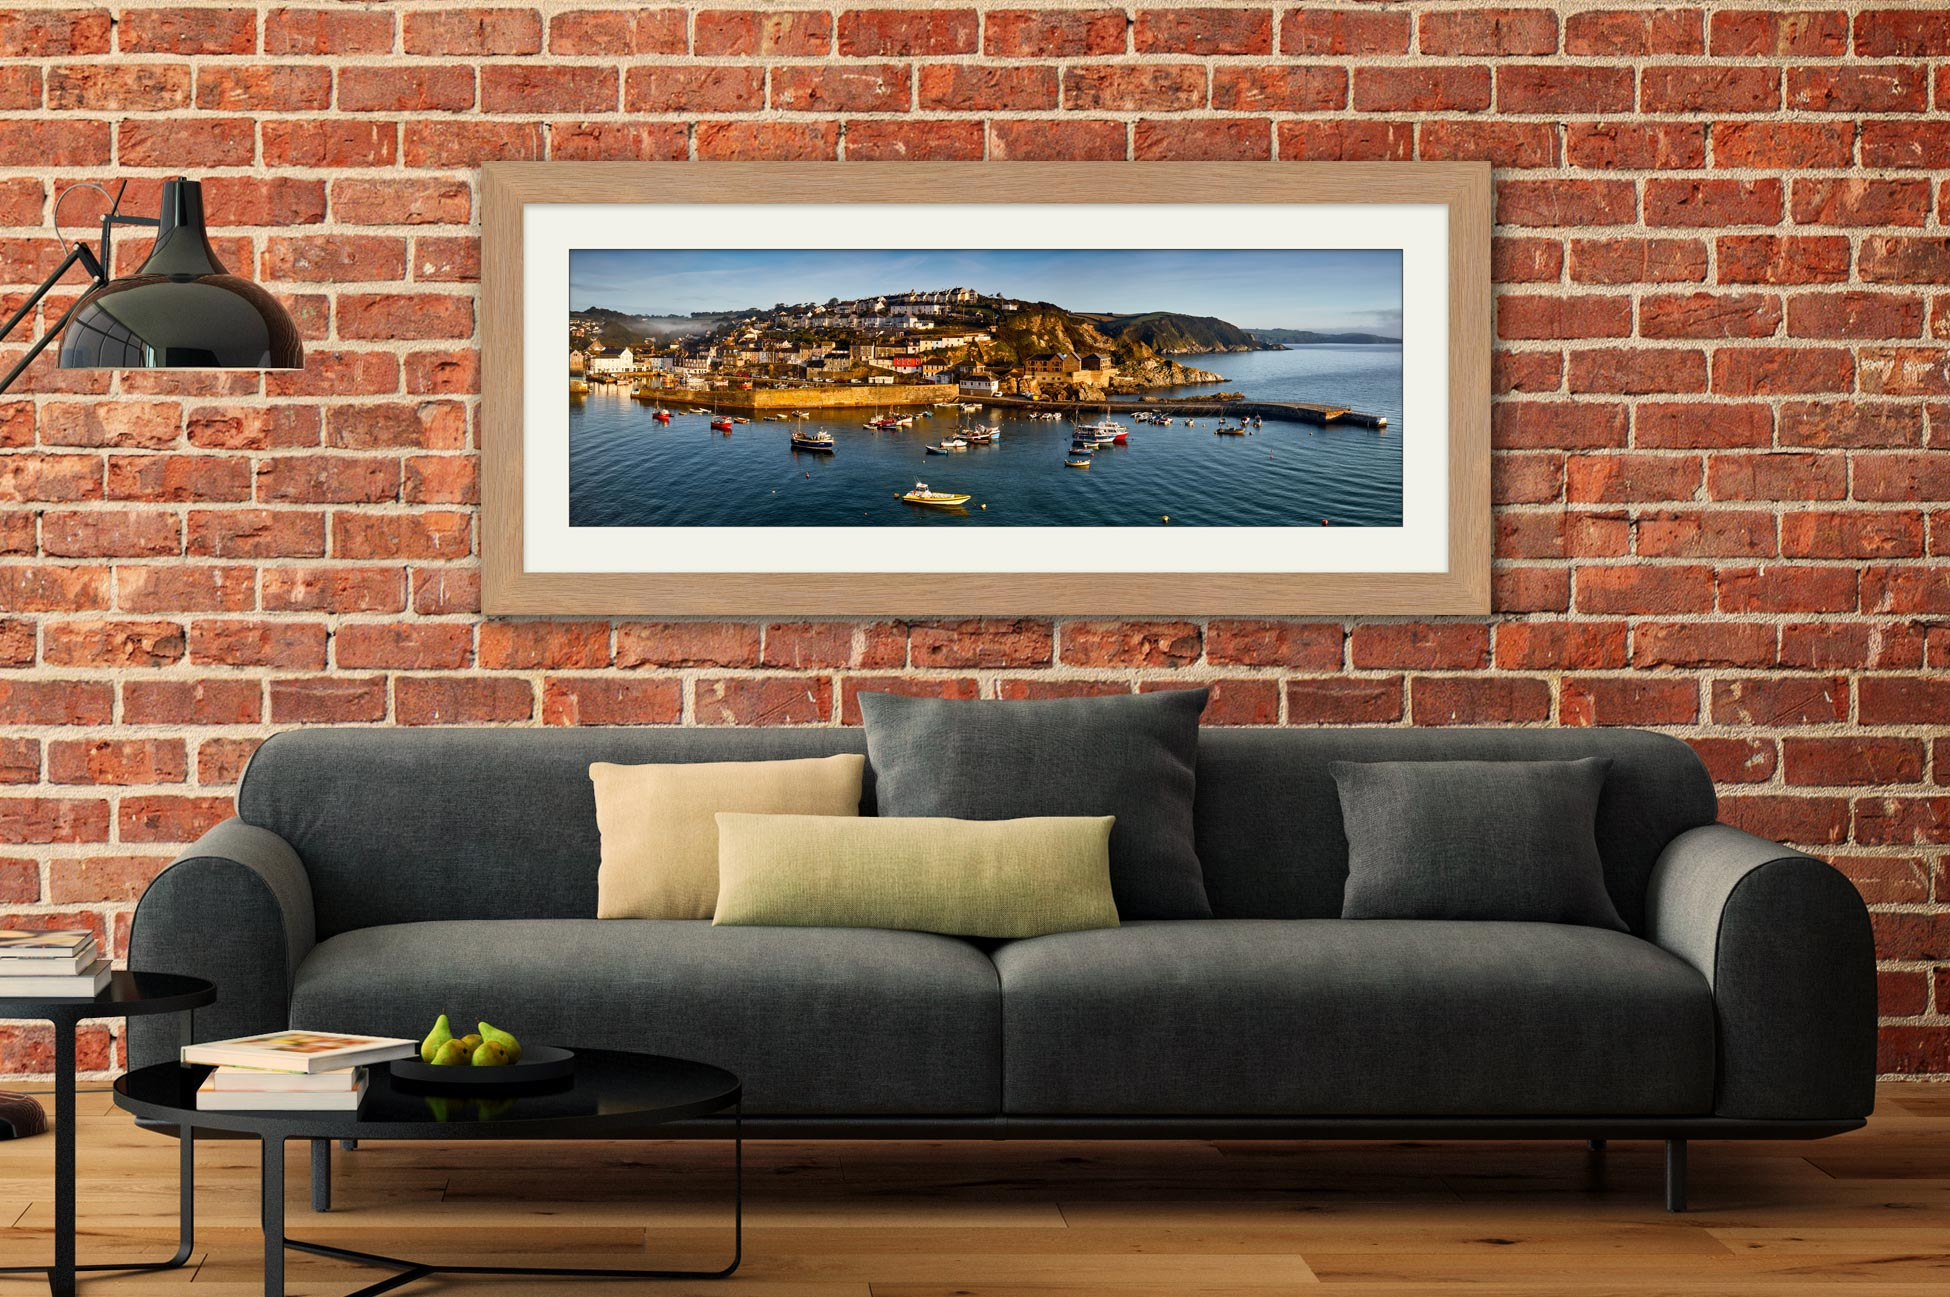 Mevagissy Harbour Panorama - Framed Print with Mount on Wall